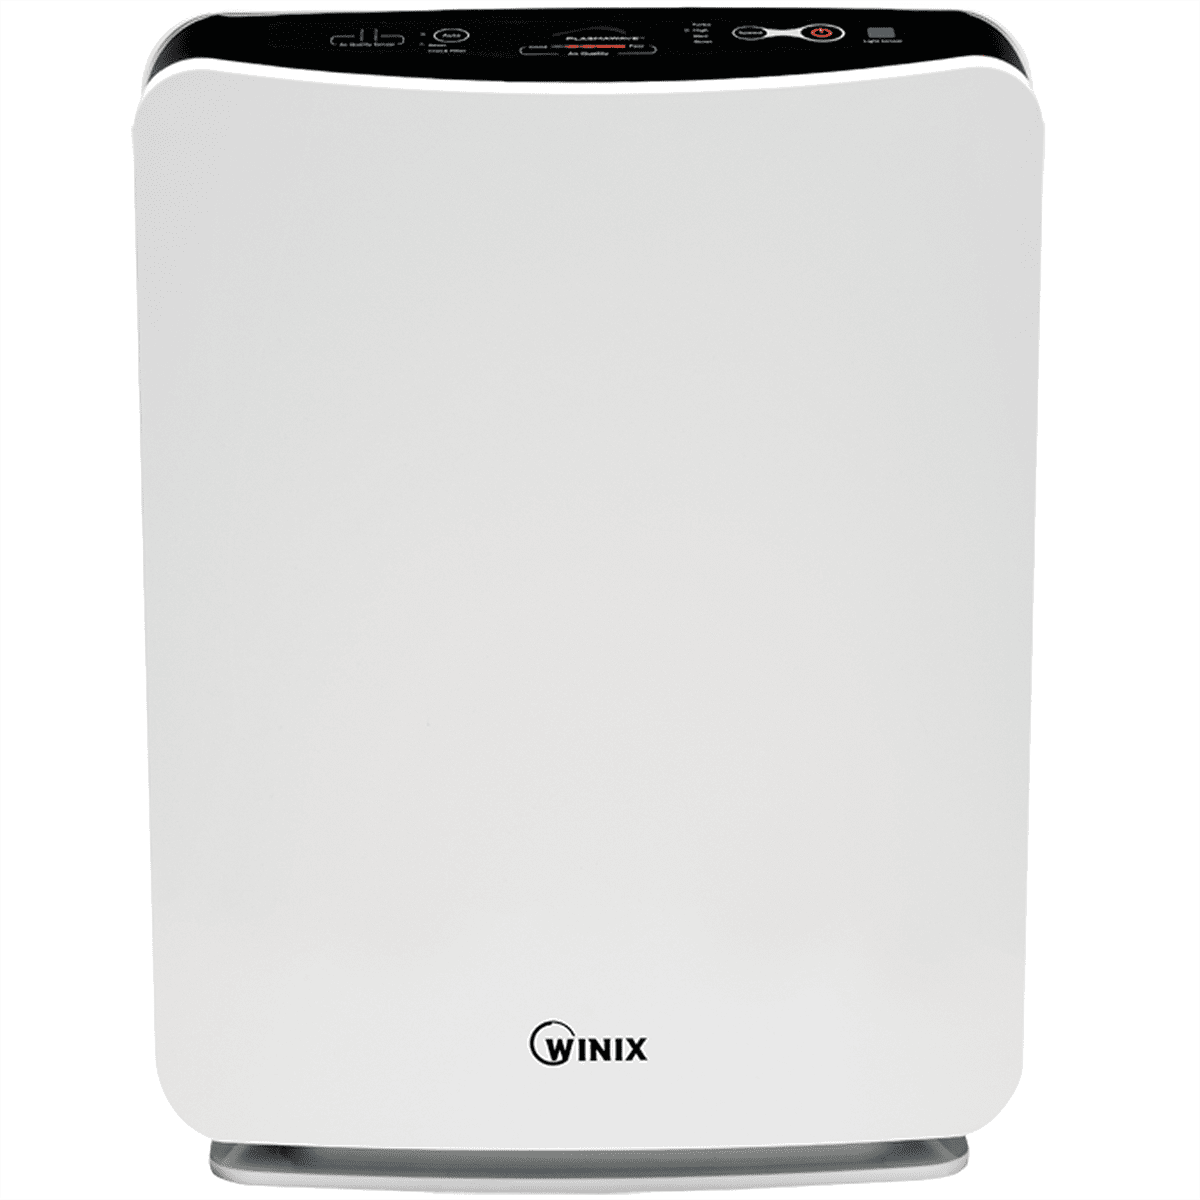 Winix p300 freshome air purifier free shipping sylvane for Winix filter cleaning